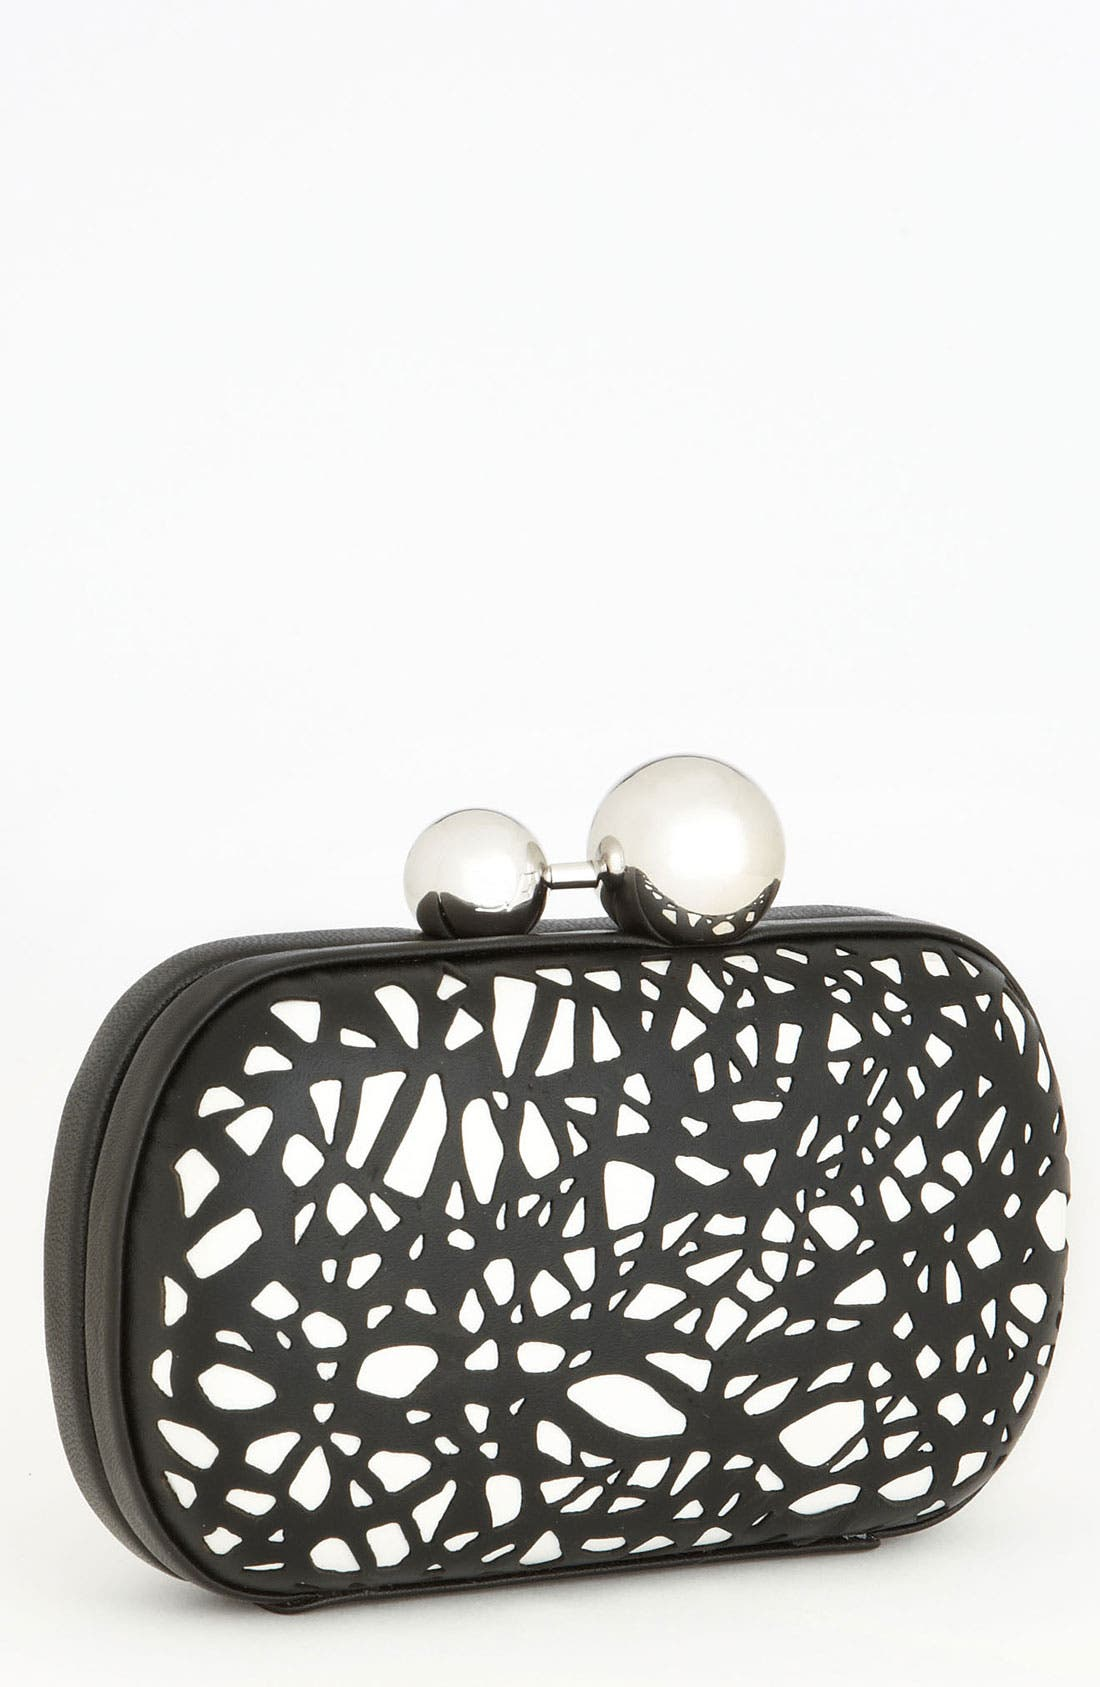 Main Image - Diane von Furstenberg 'Sphere' Laser Cut Leather Clutch